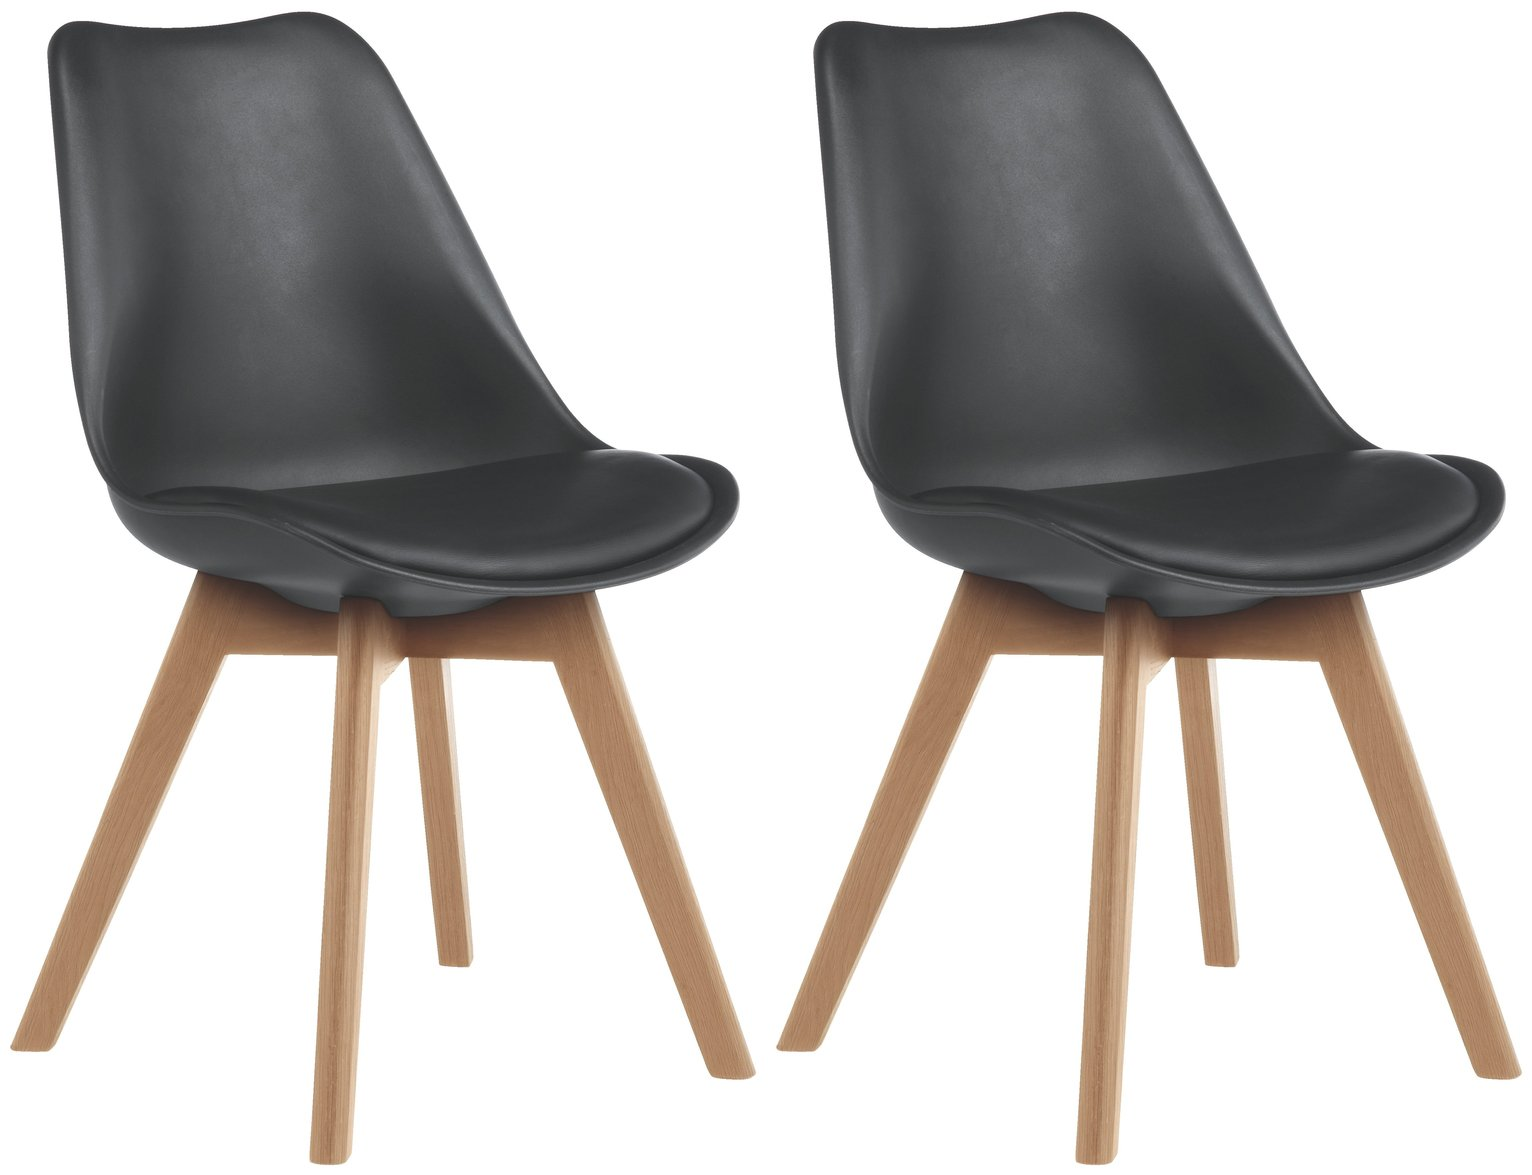 Buy Habitat Jerry Pair Of Dining Chairs Black Dining Chairs Argos